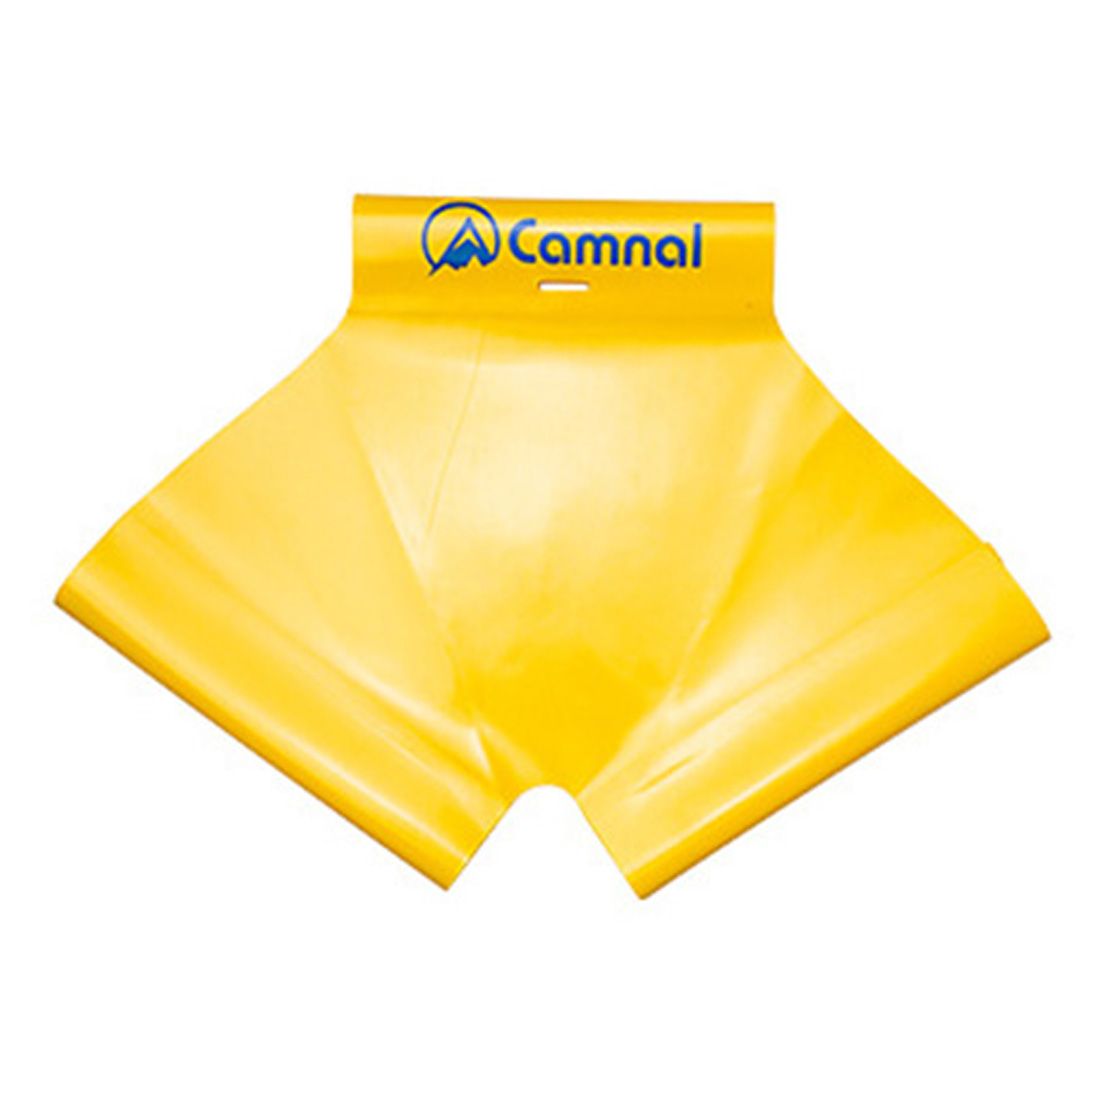 Covers Butt Seat Harness Wear-resisting PVC Rescue Rappelling Swimming